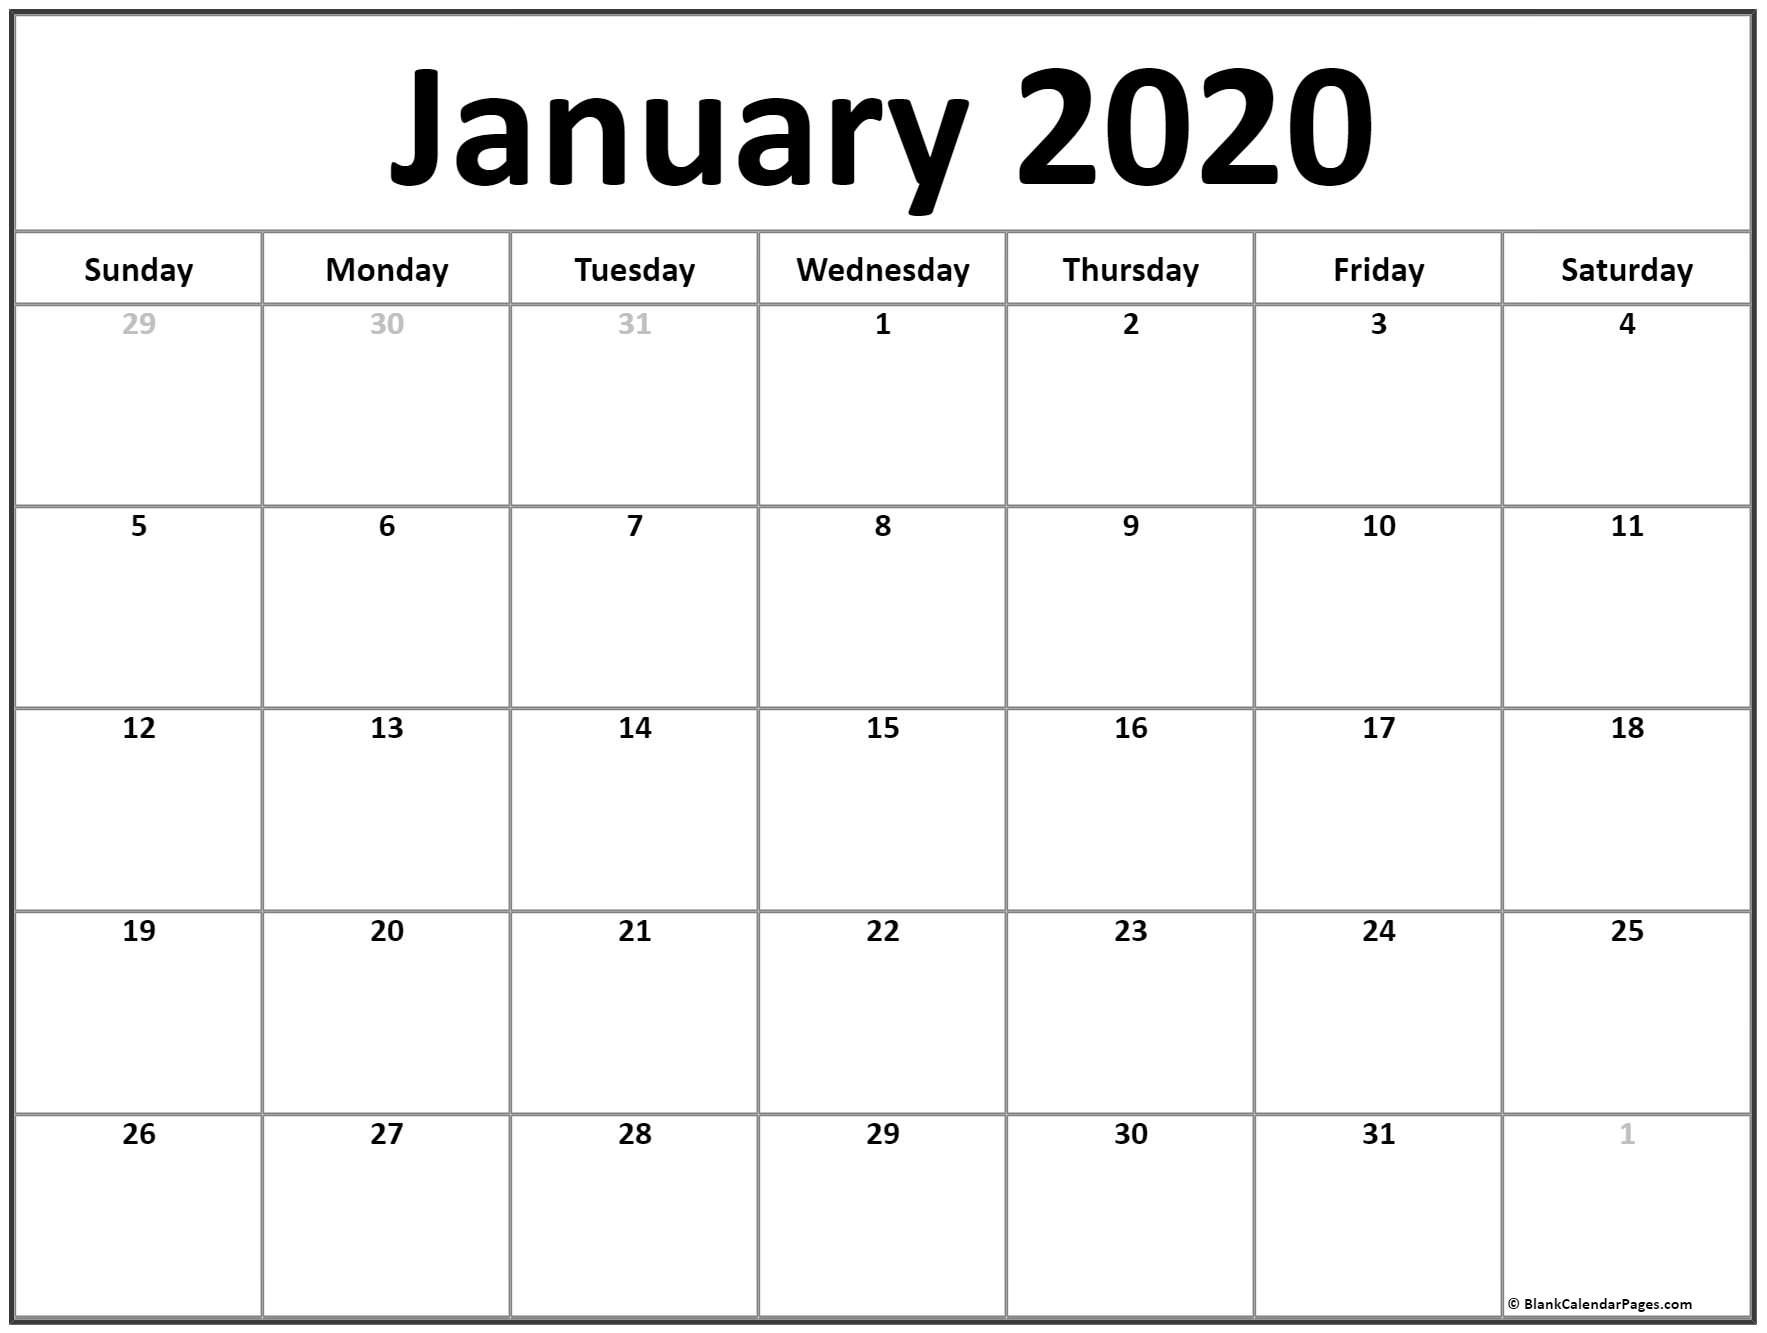 January 2020 Calendar | Free Printable Monthly Calendars Free Blank Calendar Page